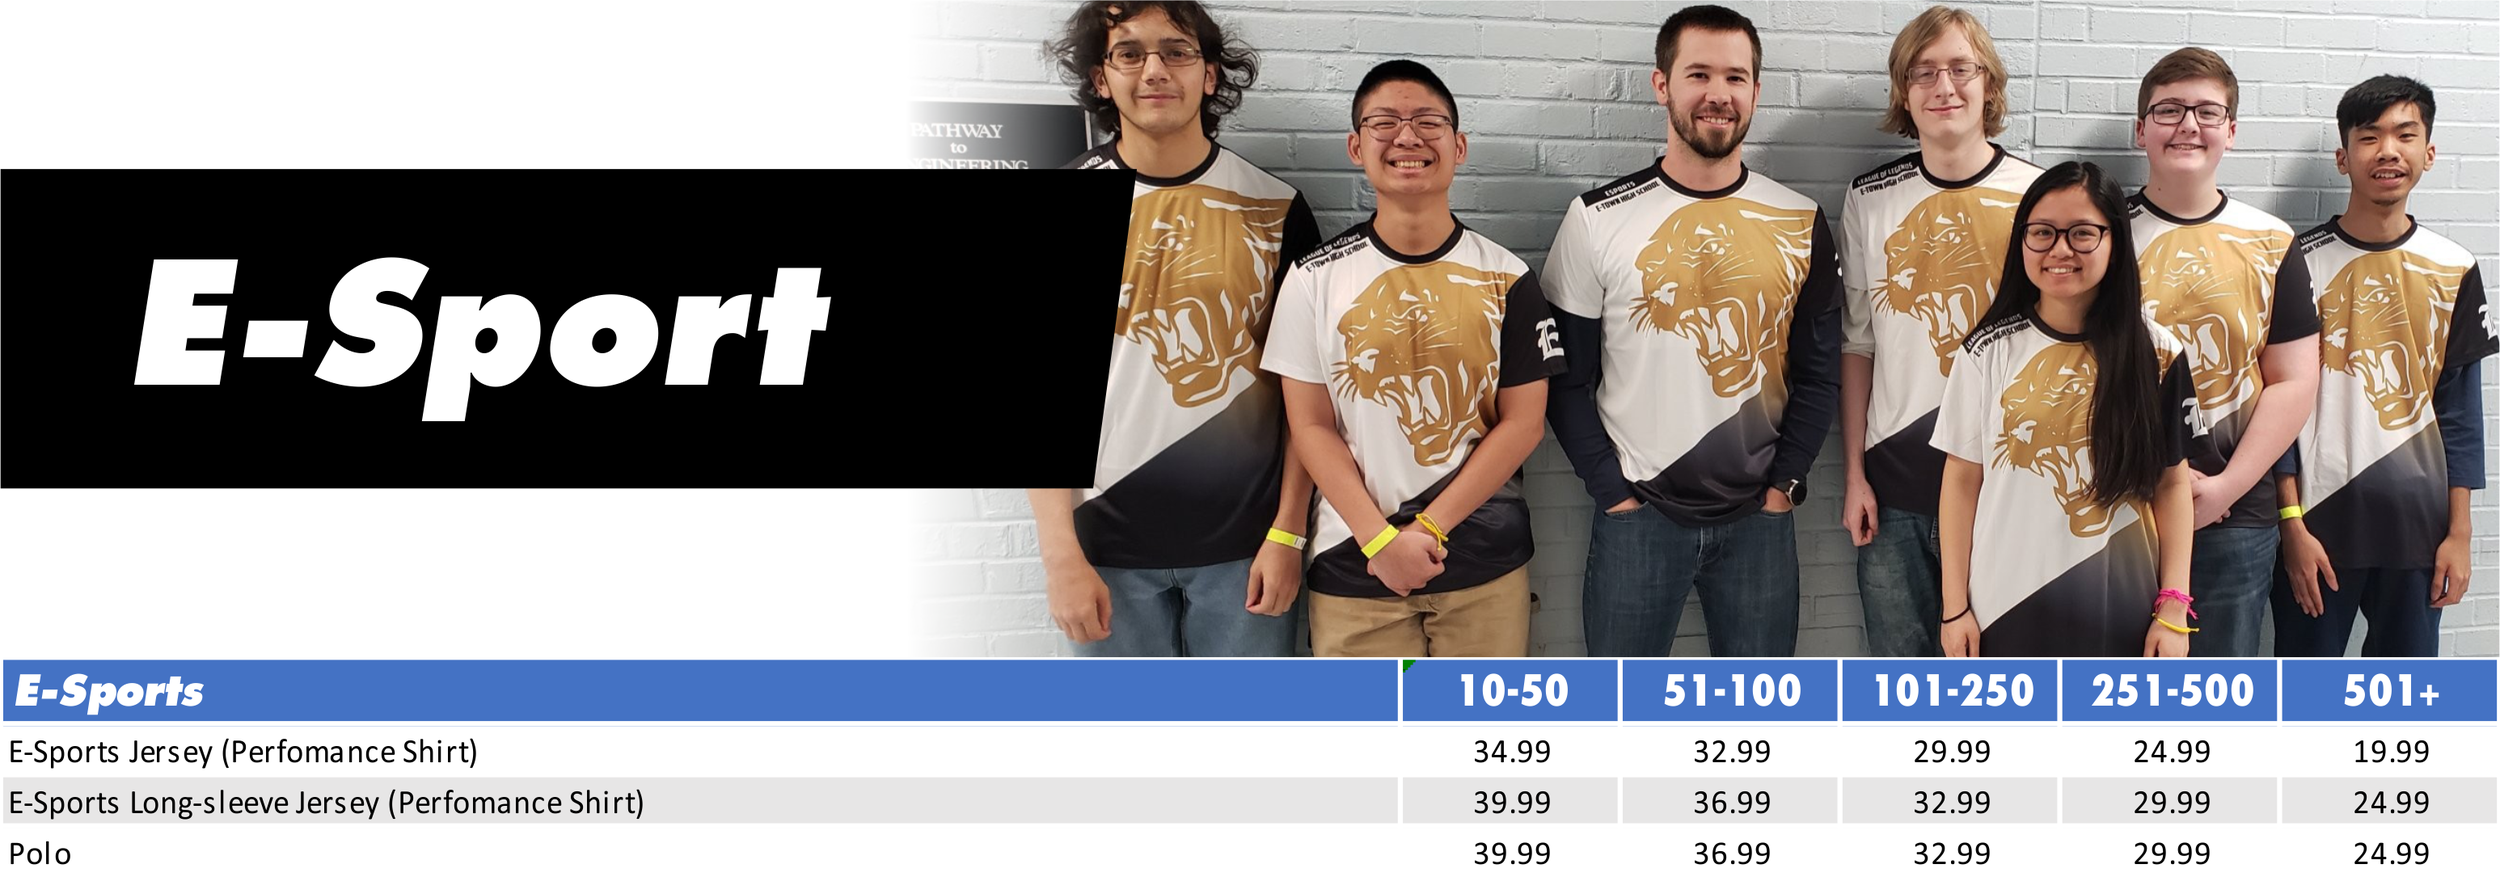 14 E-Sport wooterapparel pricing.png